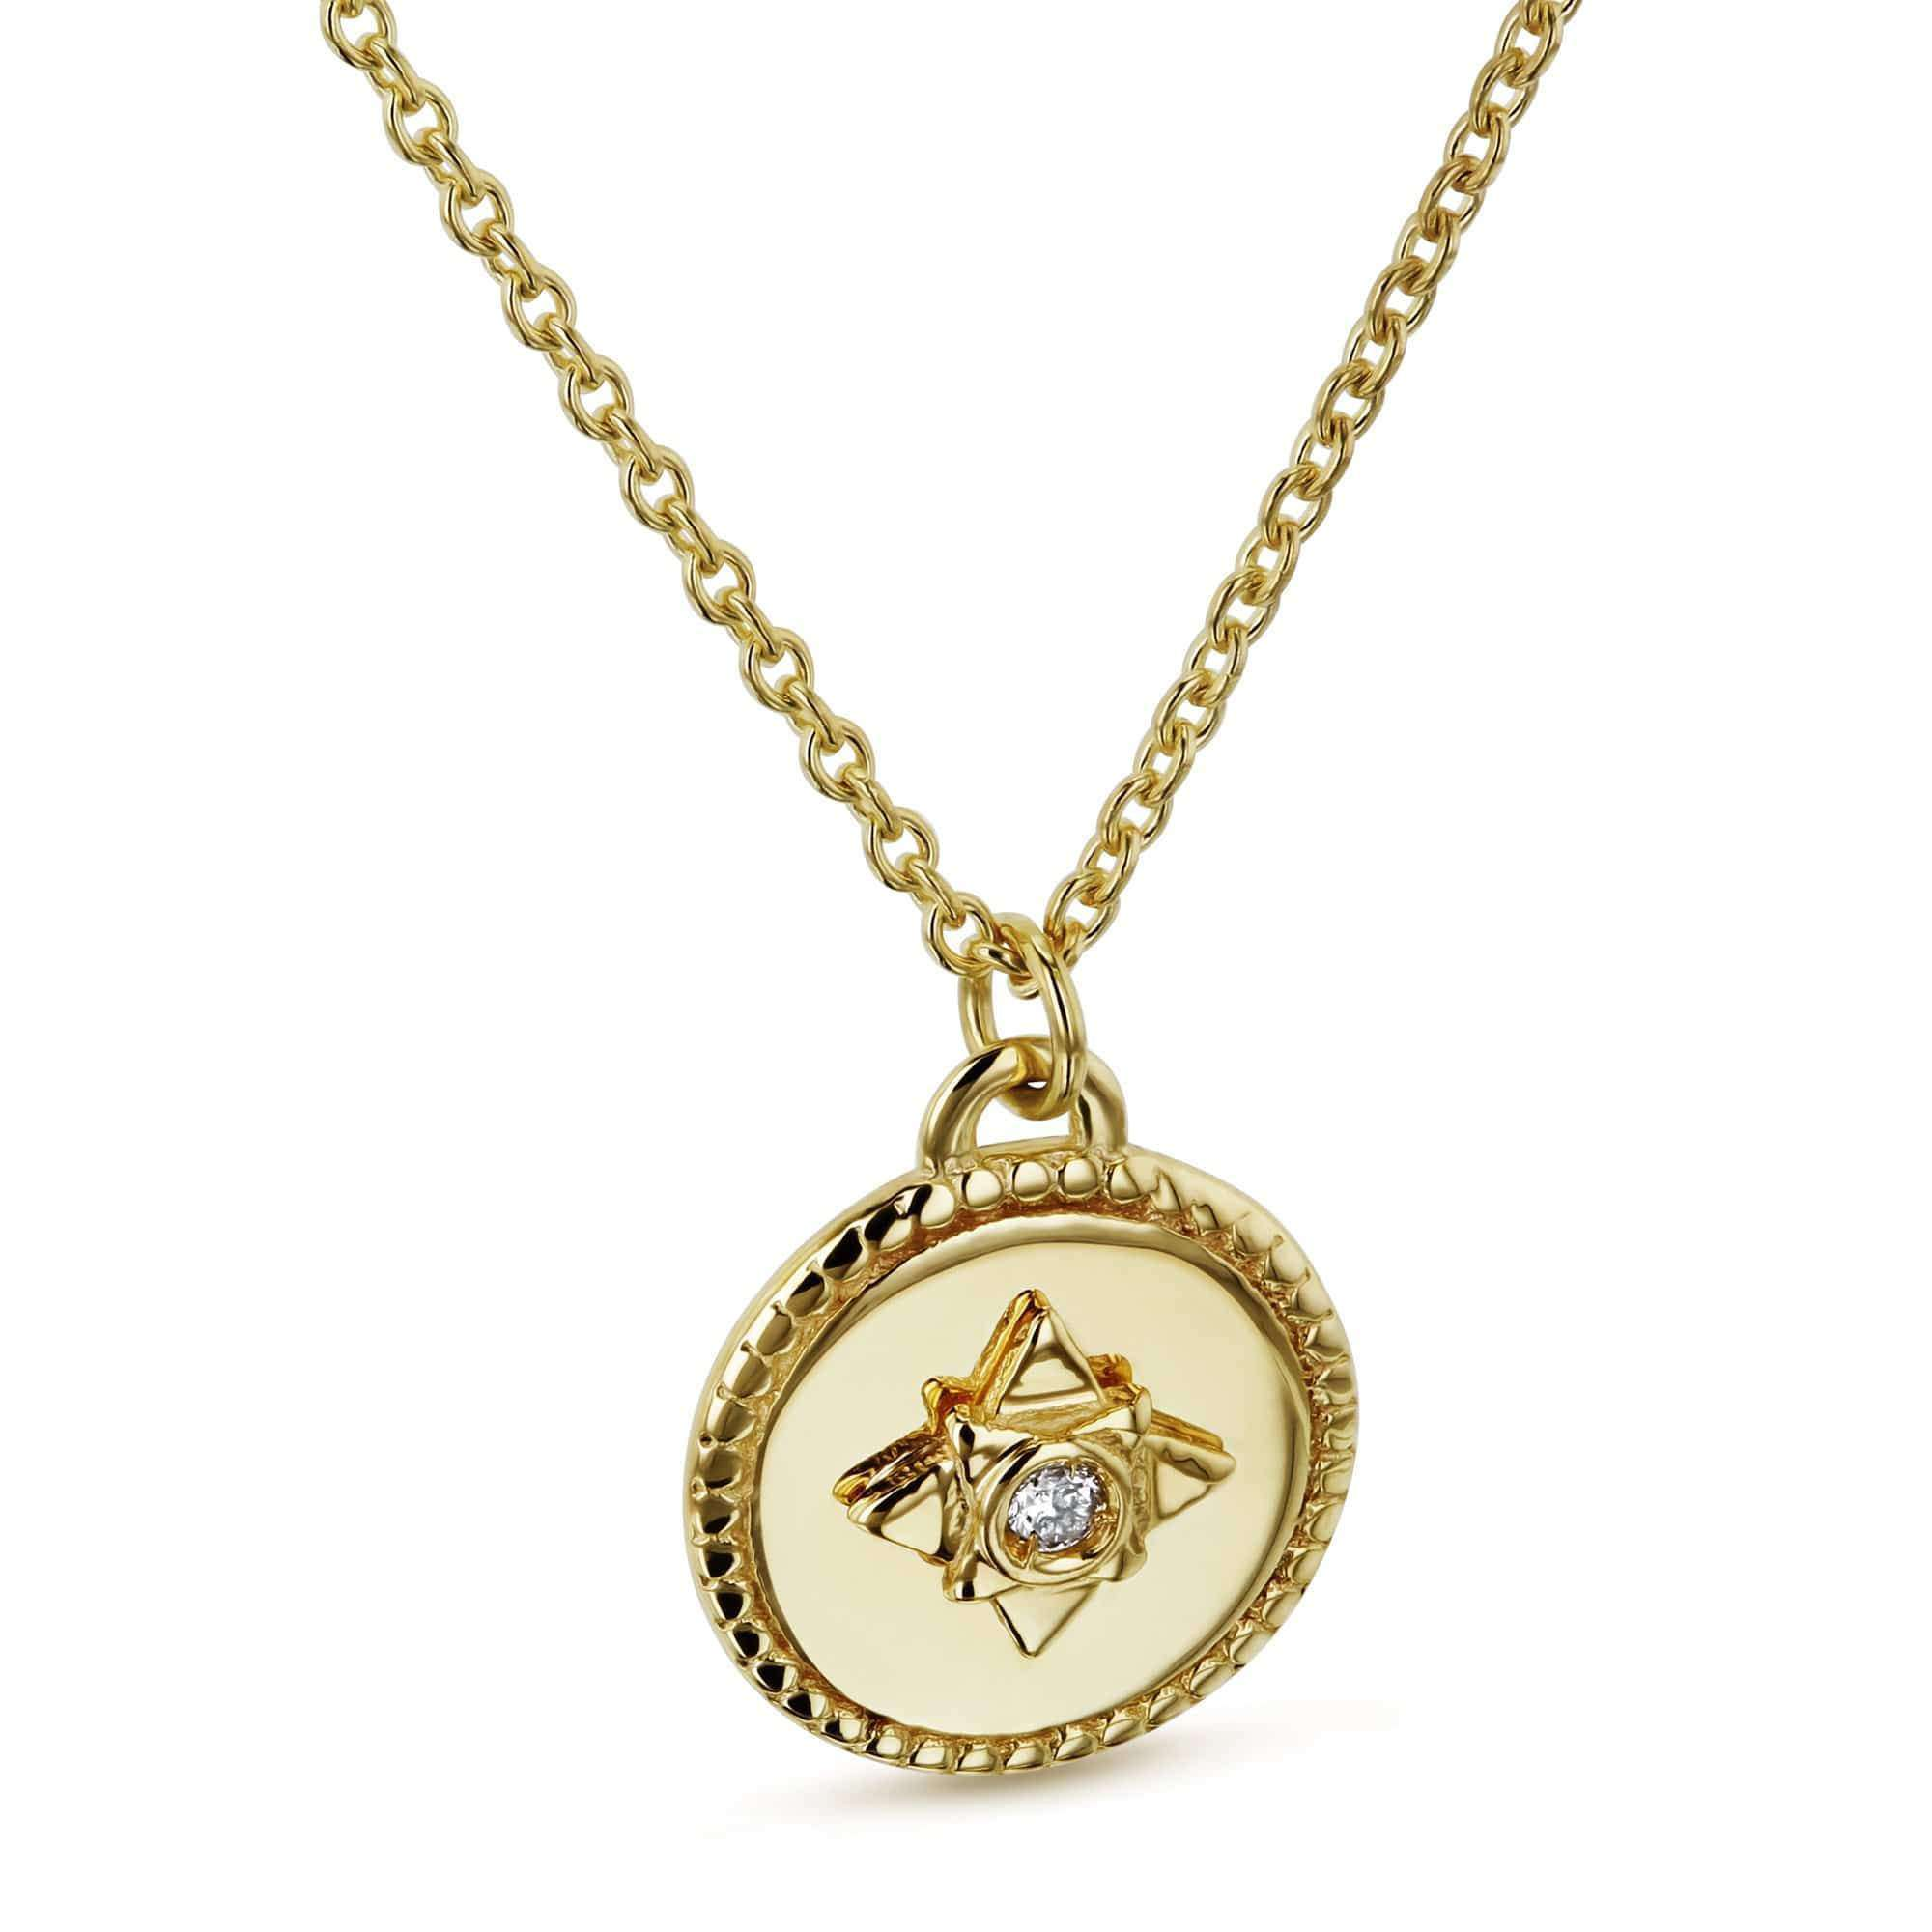 1.3pt Diamond Small Medallion Star Adjustable Necklace 14k Gold